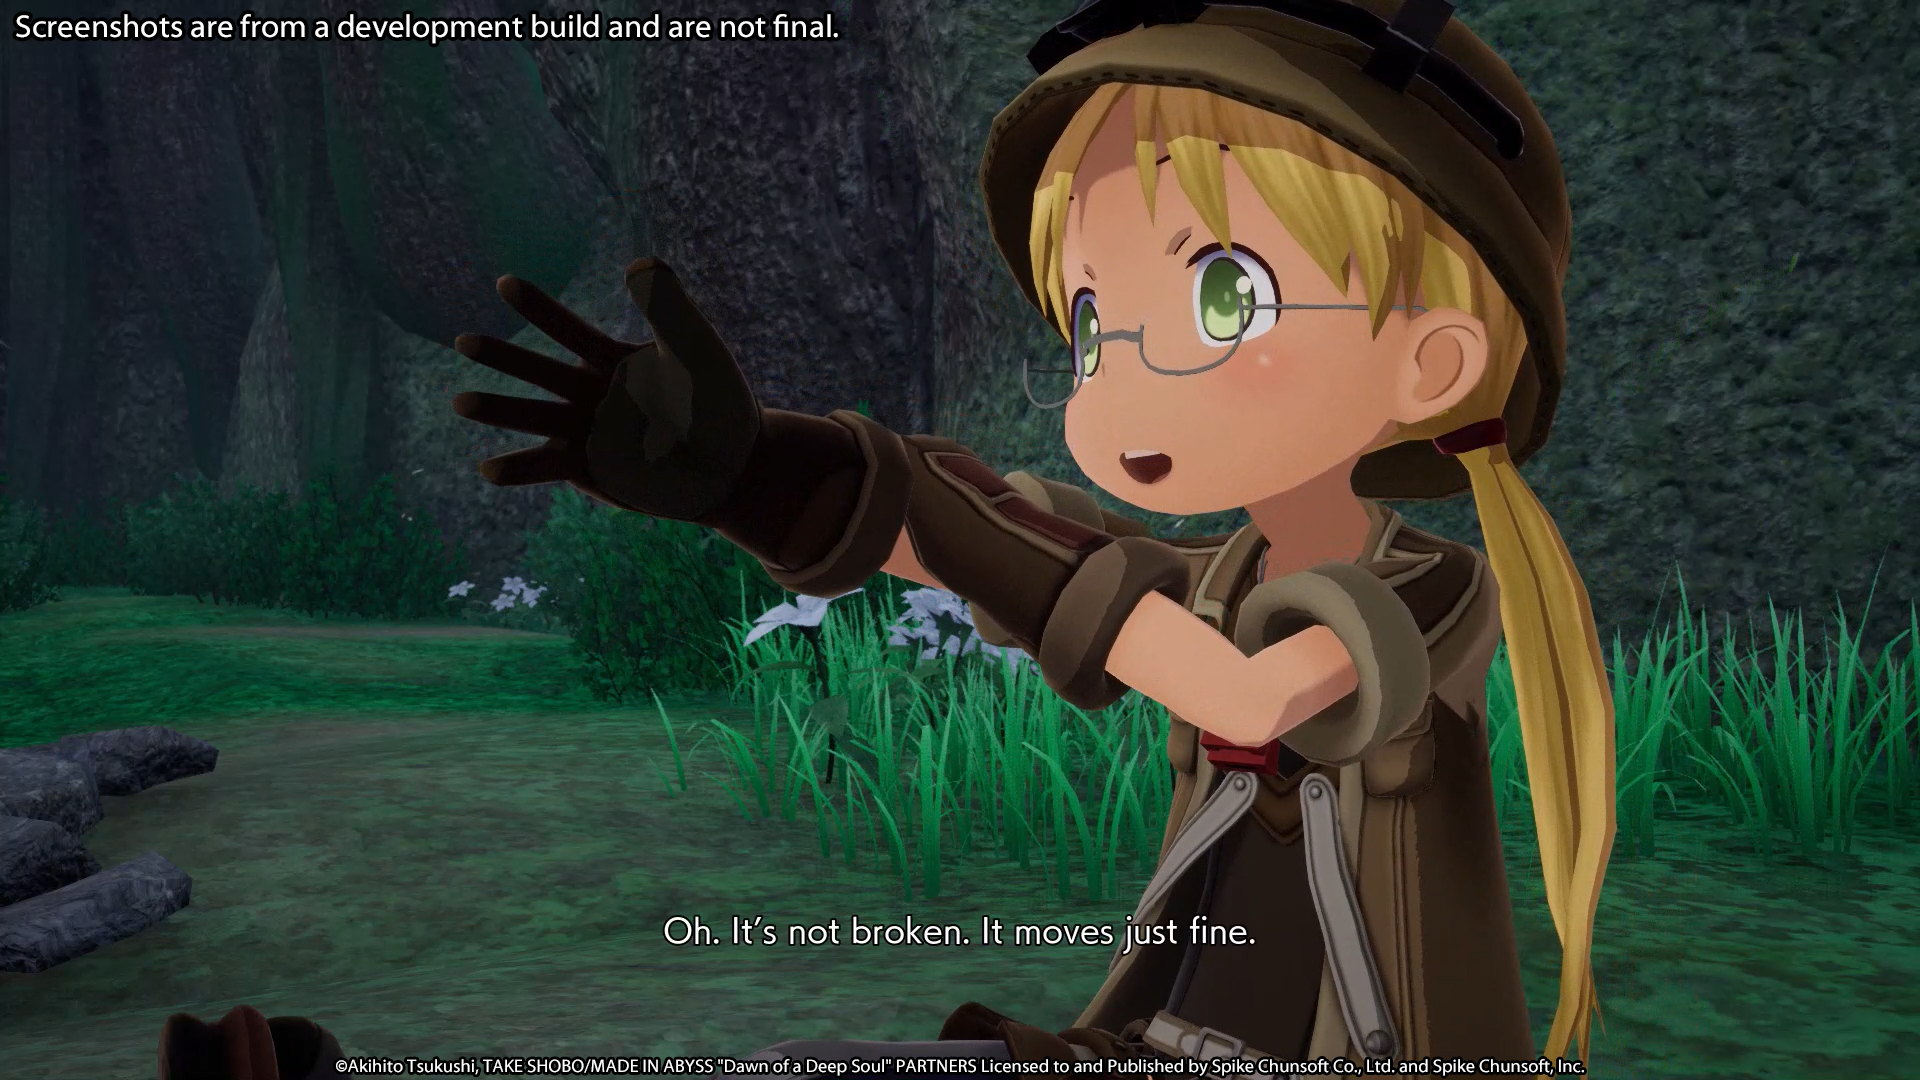 made in abyss game3